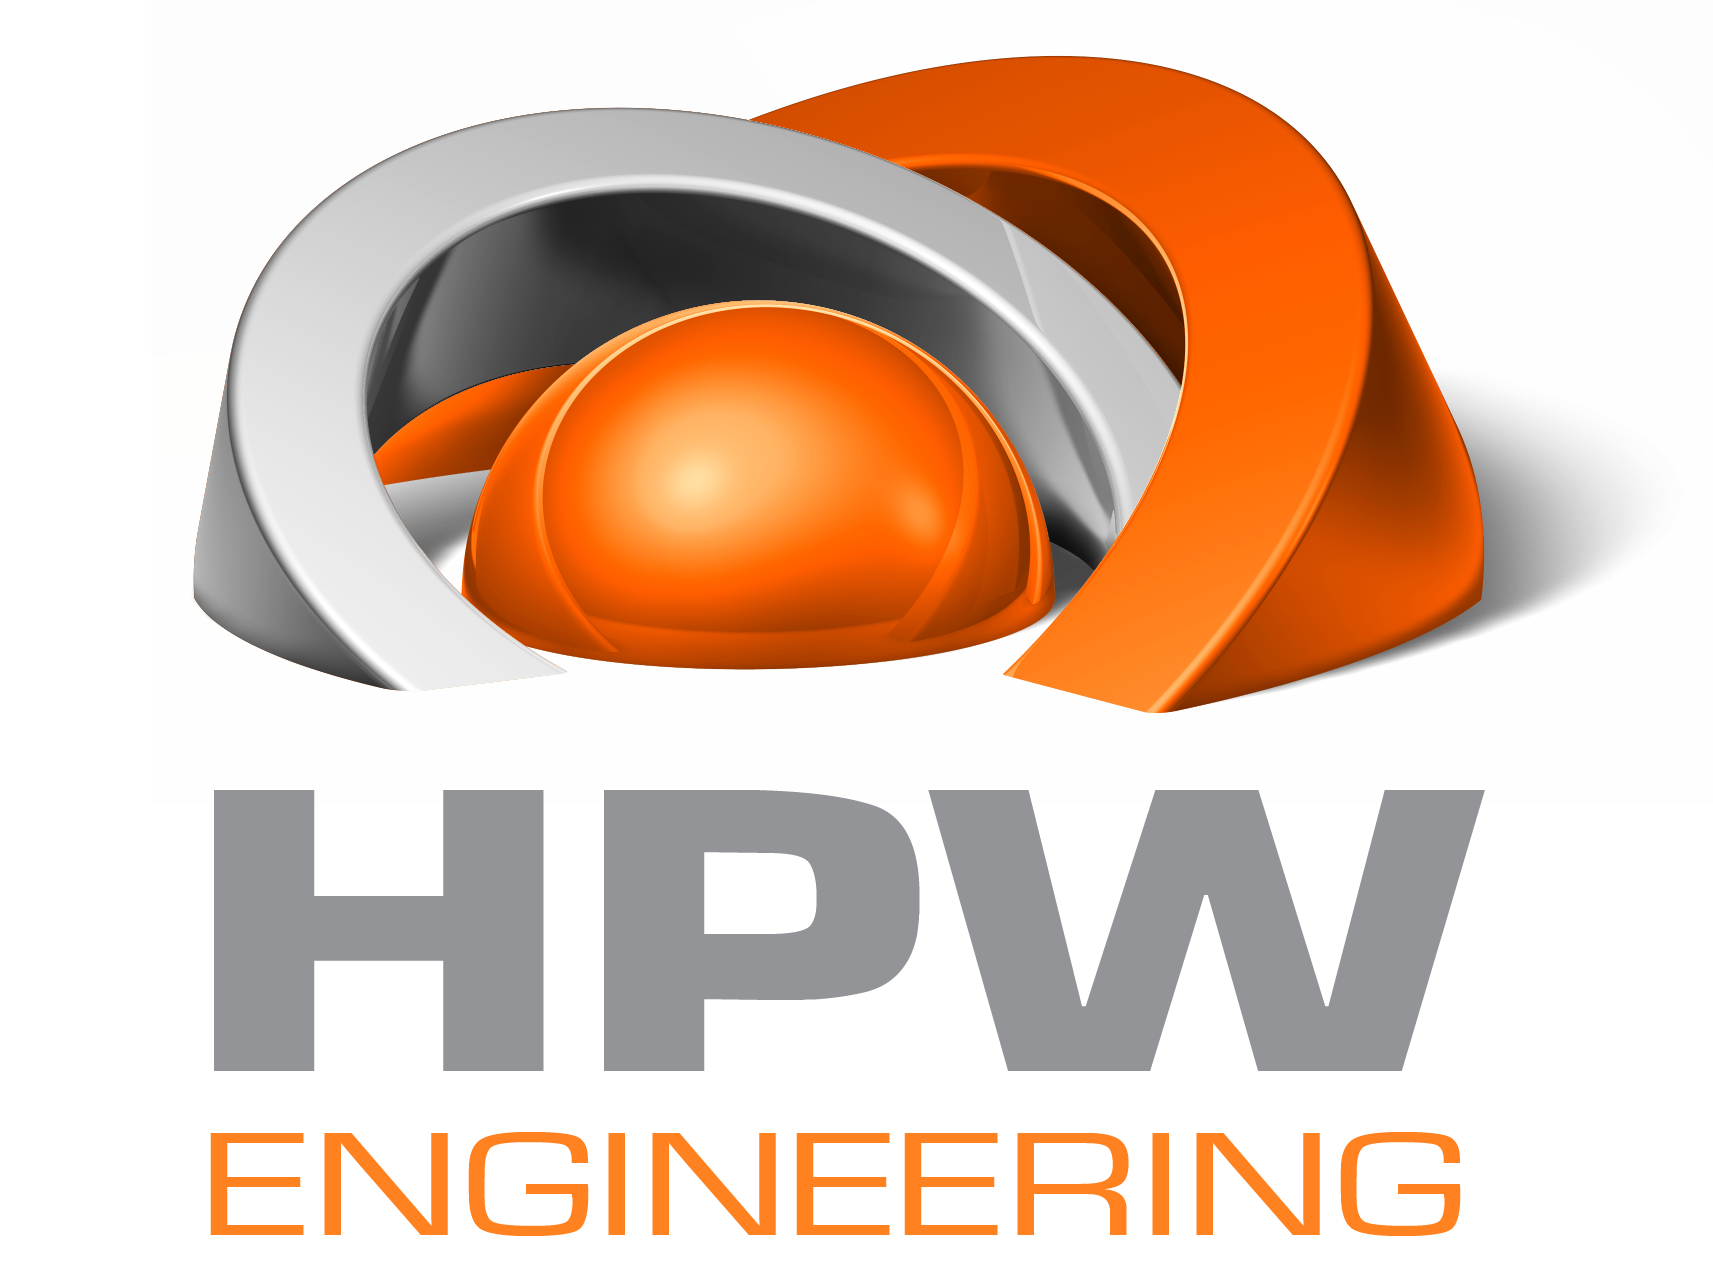 HPW Engineering GmbH | HPW Engineering GmbH - Ing. Hans-Peter Wiedemaier - Eugendorf Salzburg; Metallbau, Stahlbau, Fahrzeugbau, Simulaton, CAD, Anlagenbau, Vorrichtungsbau